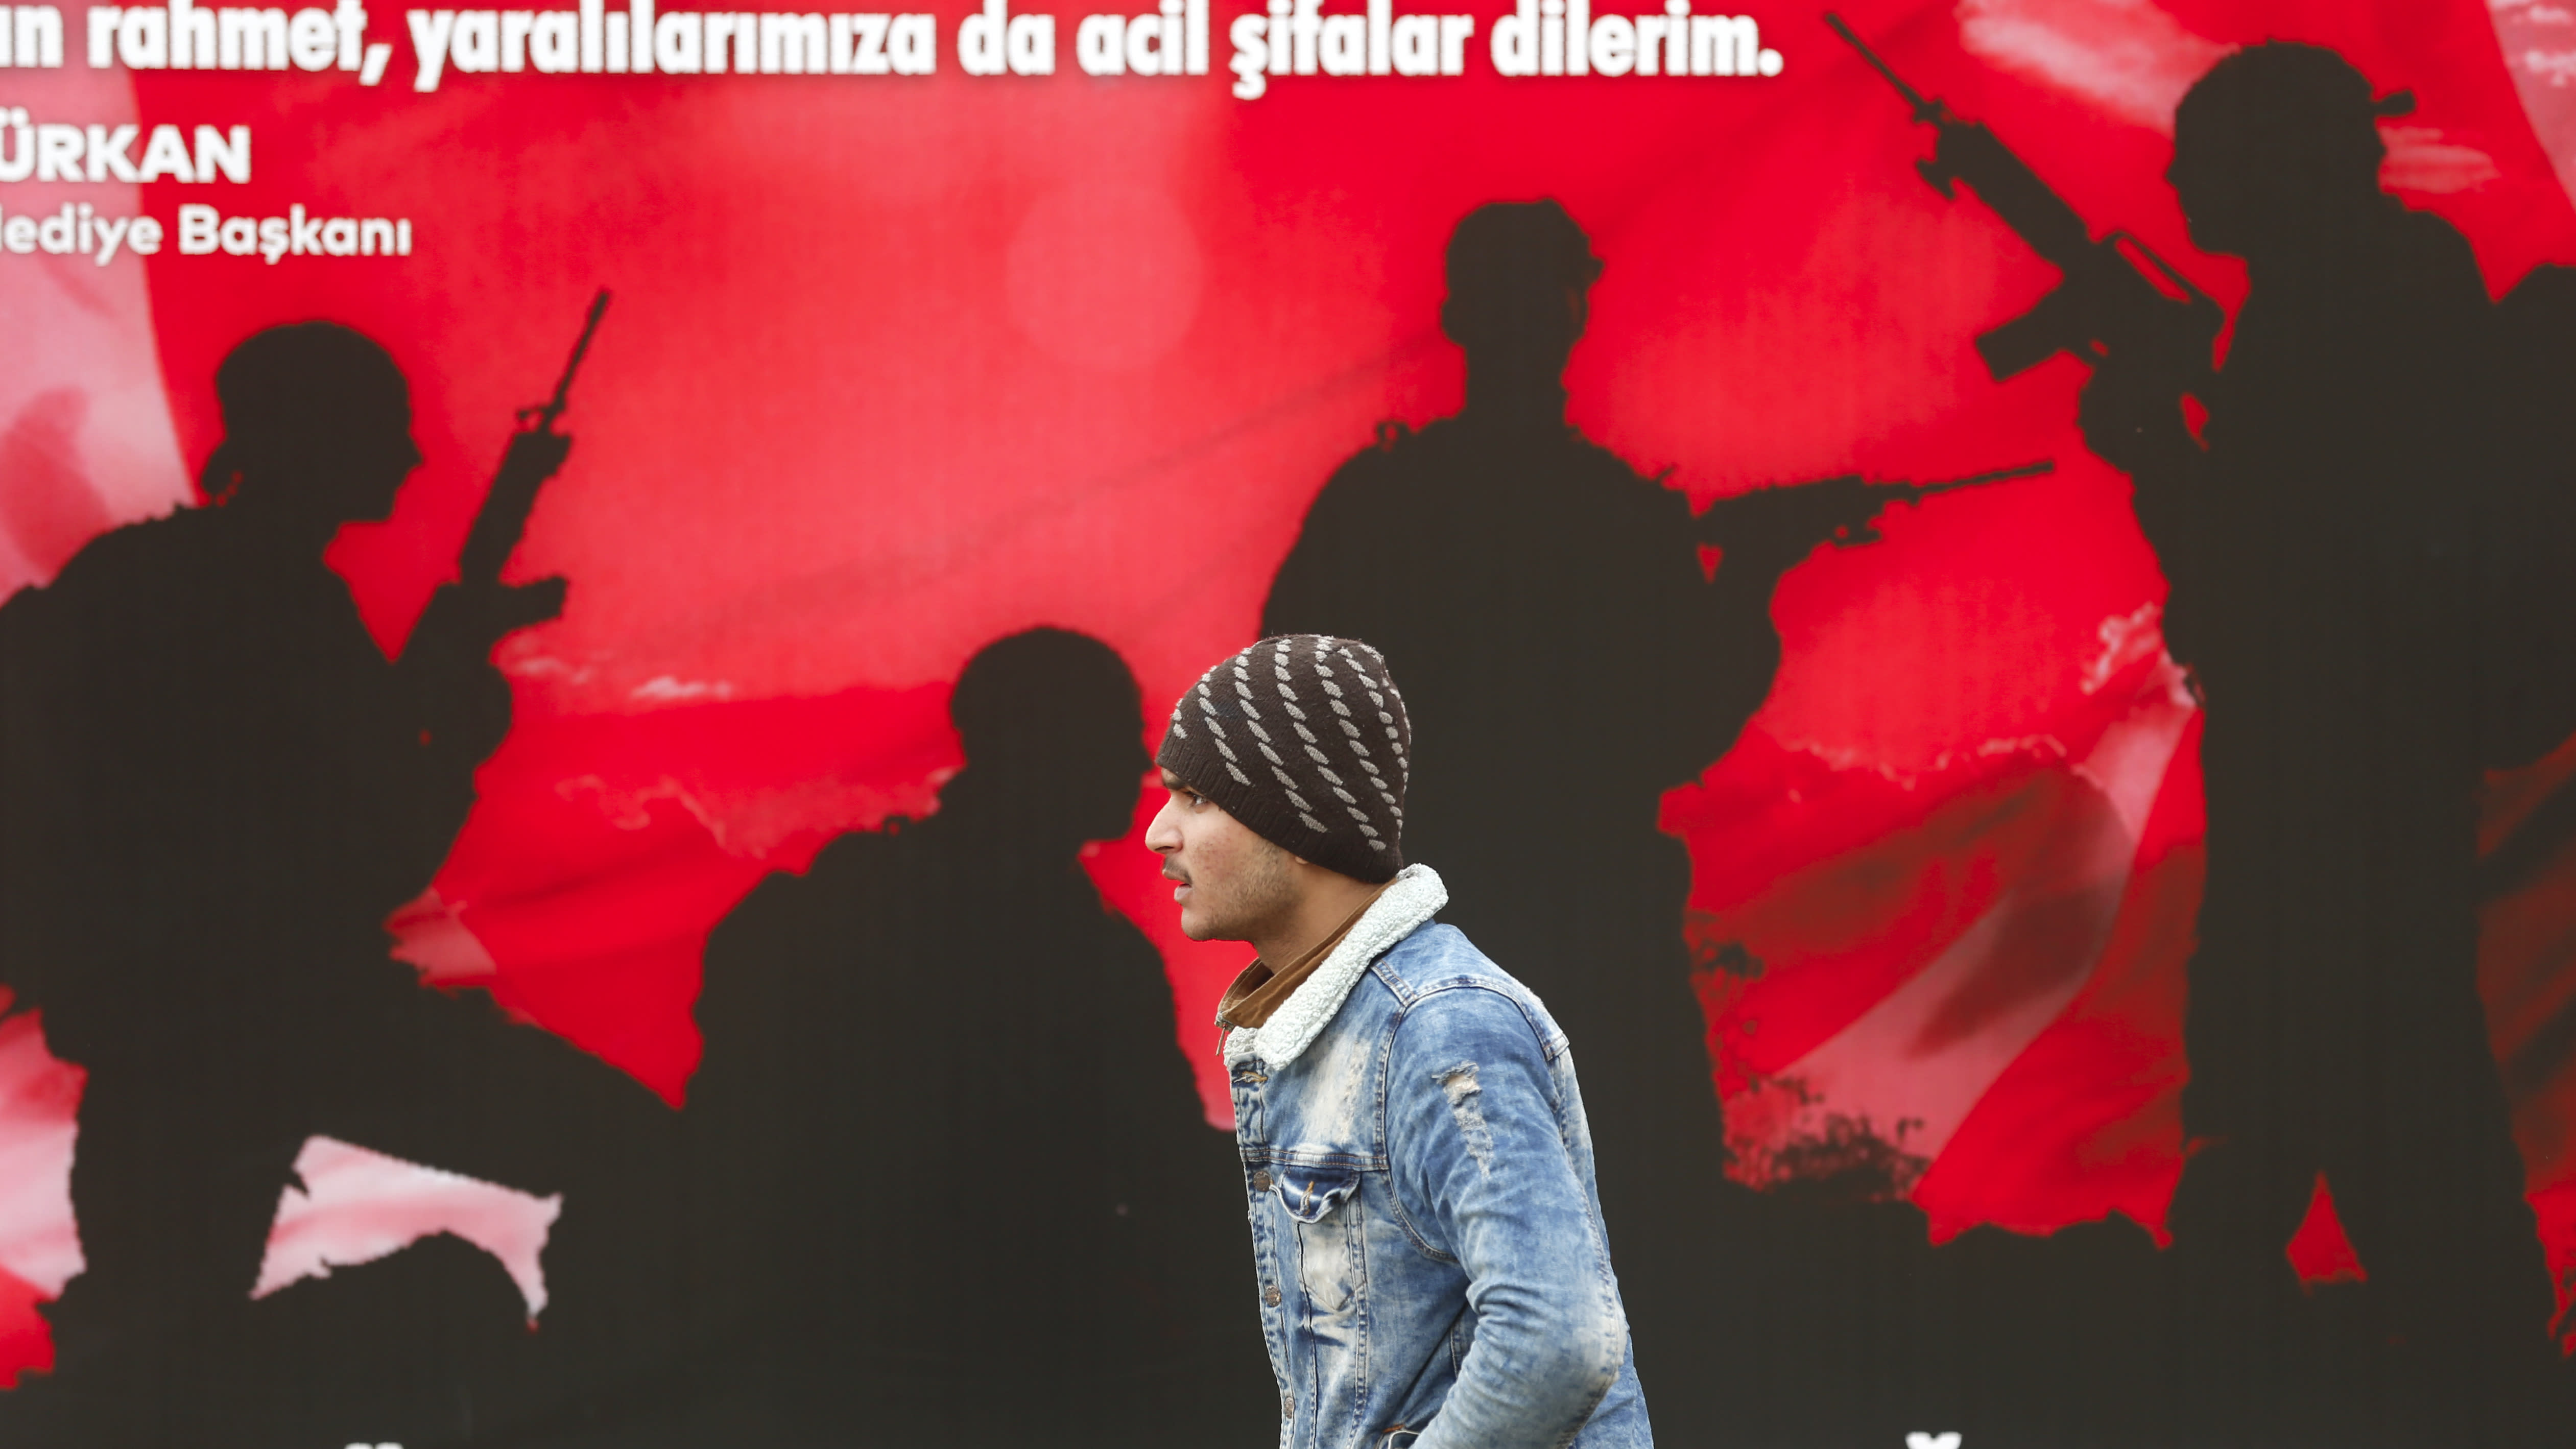 A migrant walks by a poster paying tribute to the fallen and wounded Turkish soldiers in Edirne near the Turkish-Greek border on Thursday, March 5, 2020. Turkey has vowed to seek justice for a migrant it says was killed on the border with Greece after Greek authorities fired tear gas and stun grenades to push back dozens of people attempting to cross over. Greece had denied that anyone was killed in the clashes. (AP Photo/Darko Bandic)